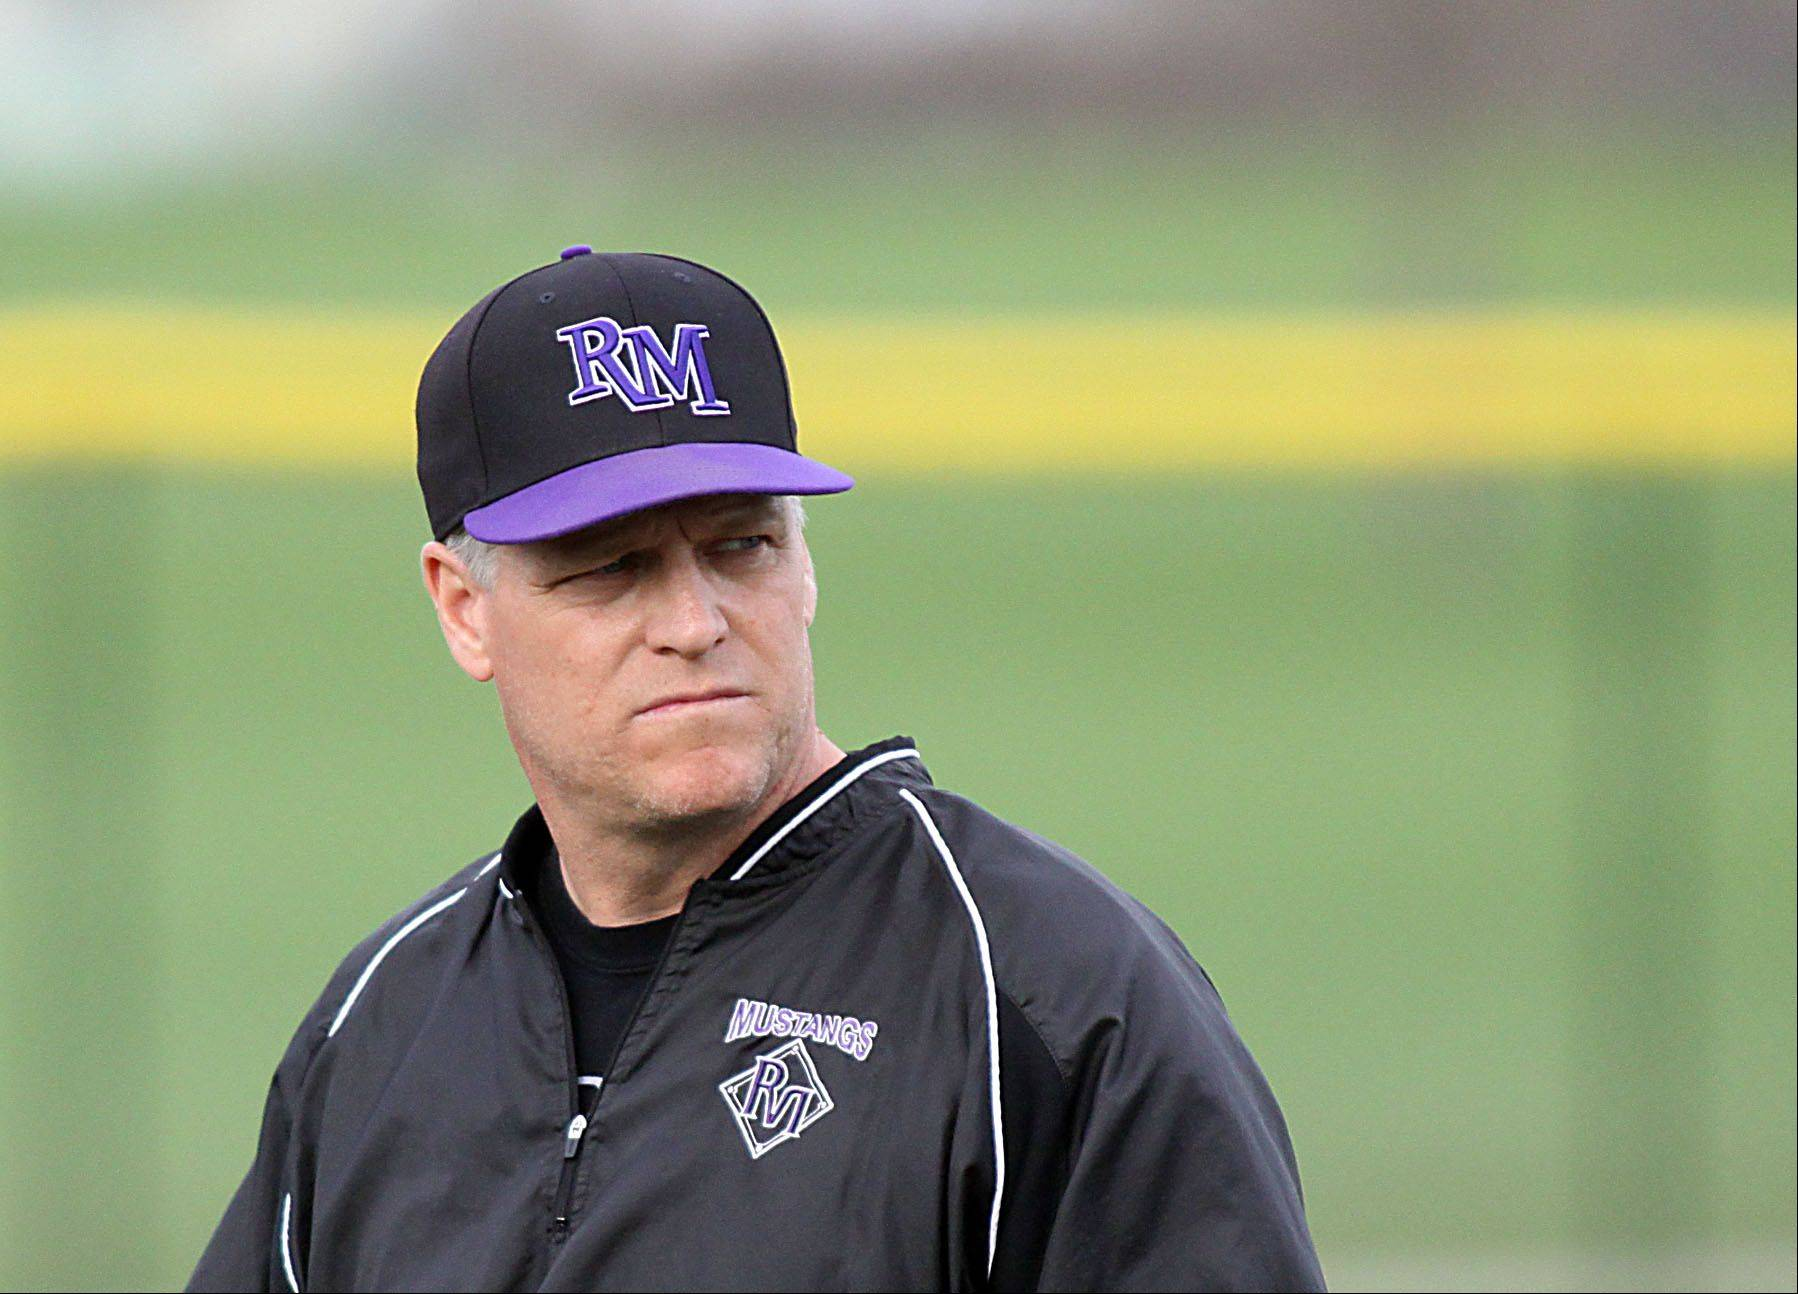 Rolling Meadows coach Jim Lindeman walks back to the dugout during Monday's game with Elk Grove at South Salk Park on Monday evening. Lindeman is a former big-leaguer, having spent parts of nine seasons with, among other teams, the St. Louis Cardinals.